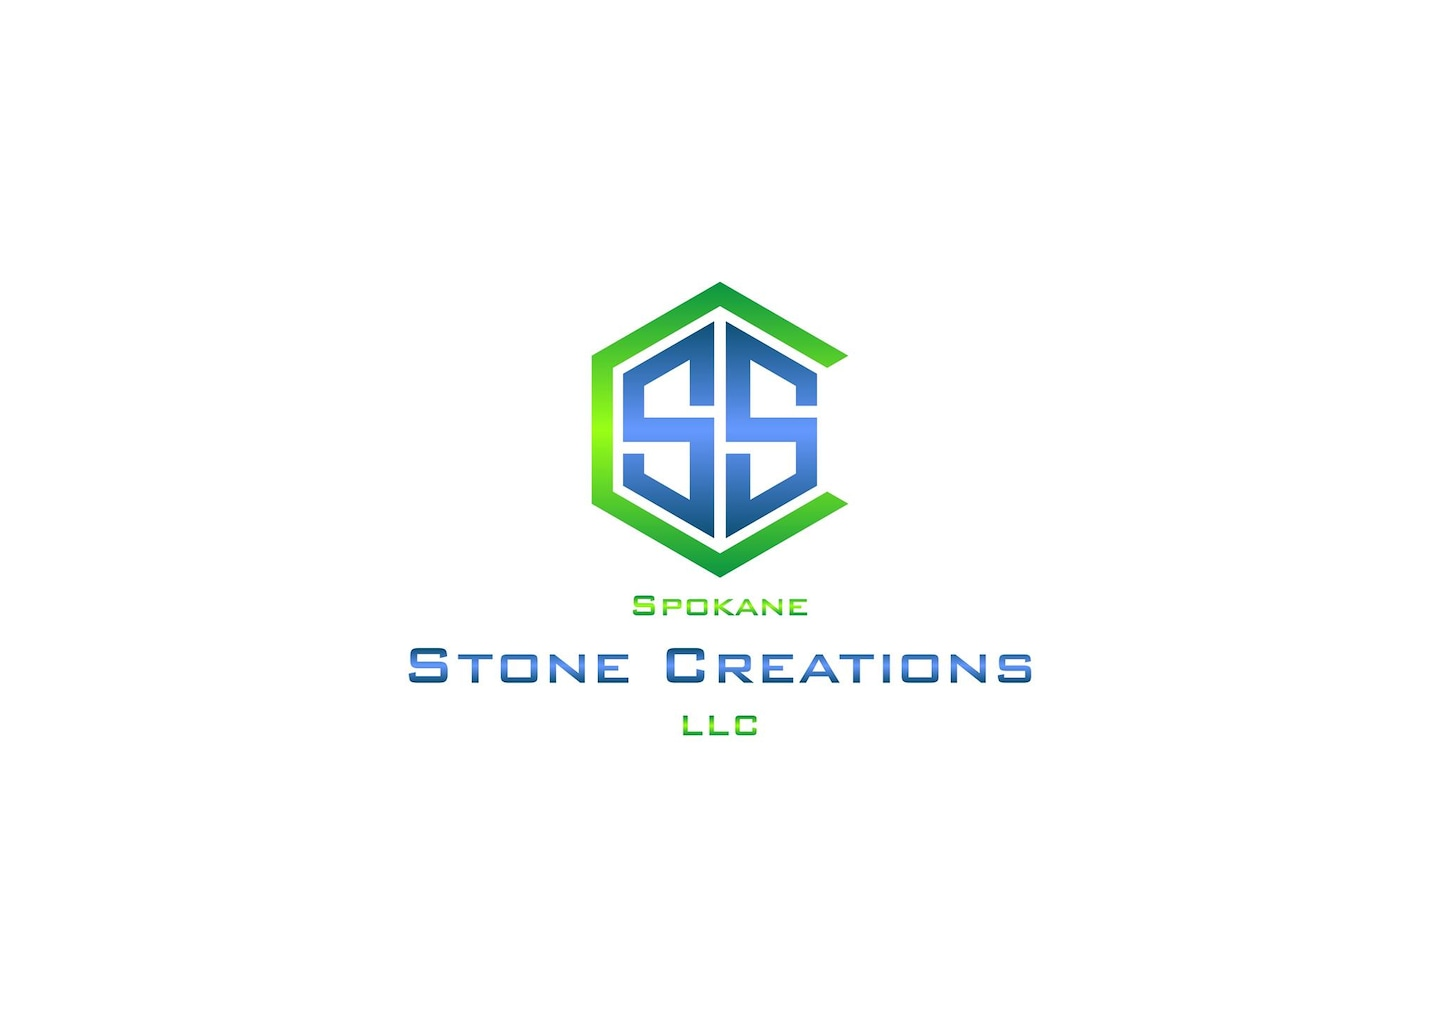 Spokane Stone Creations, LLC.